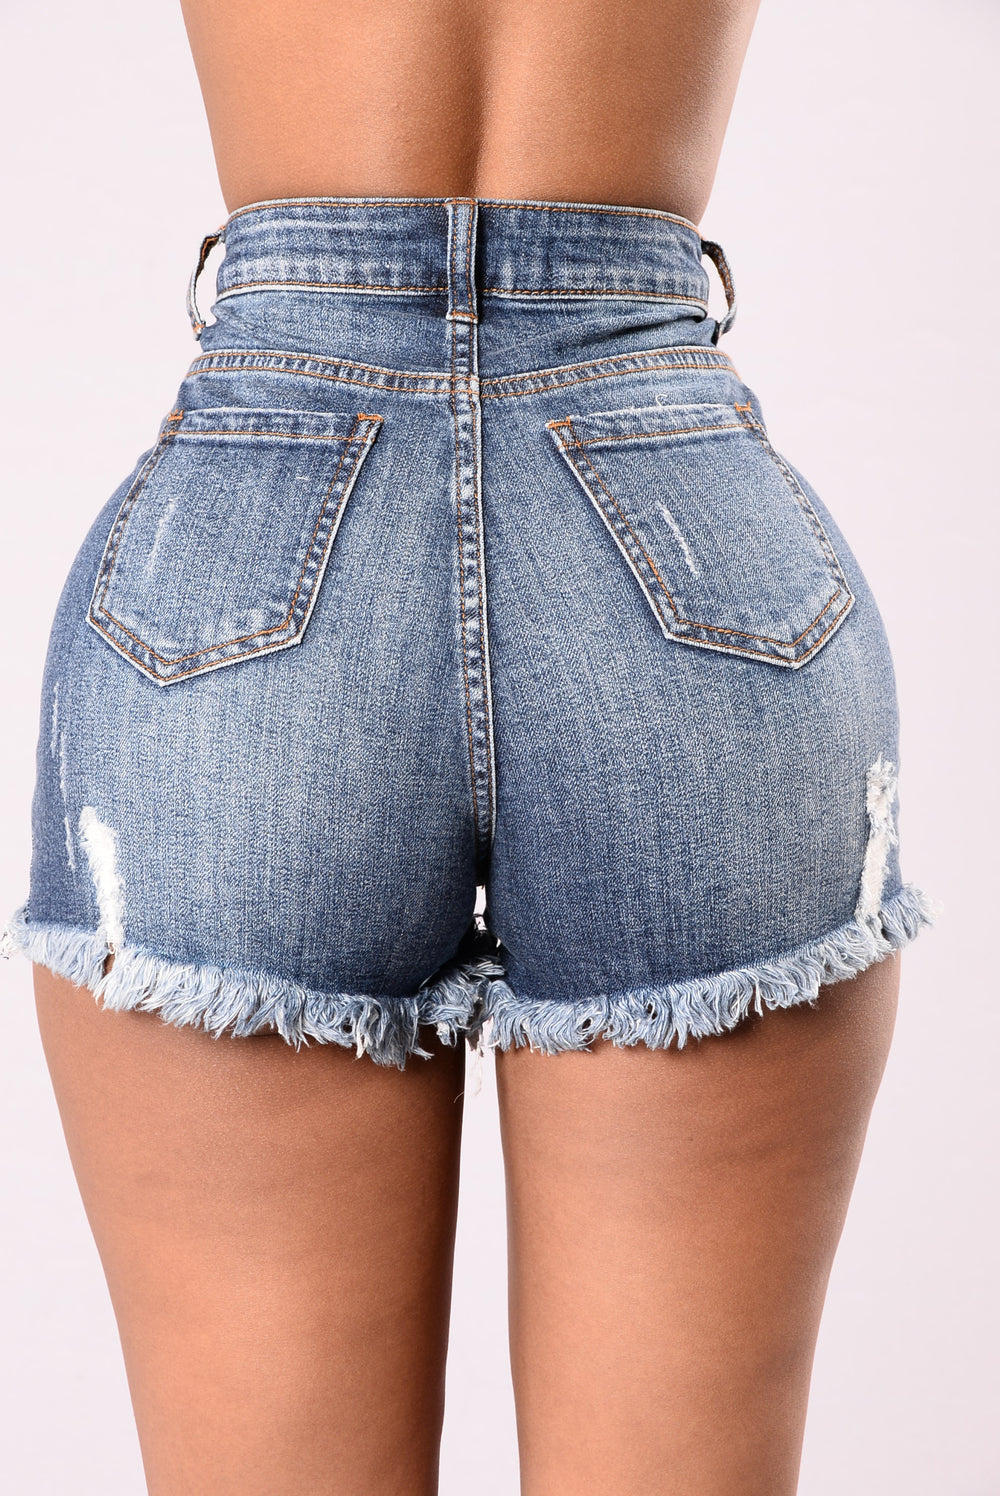 Dreaming Of Denim Shorts - Medium Blue